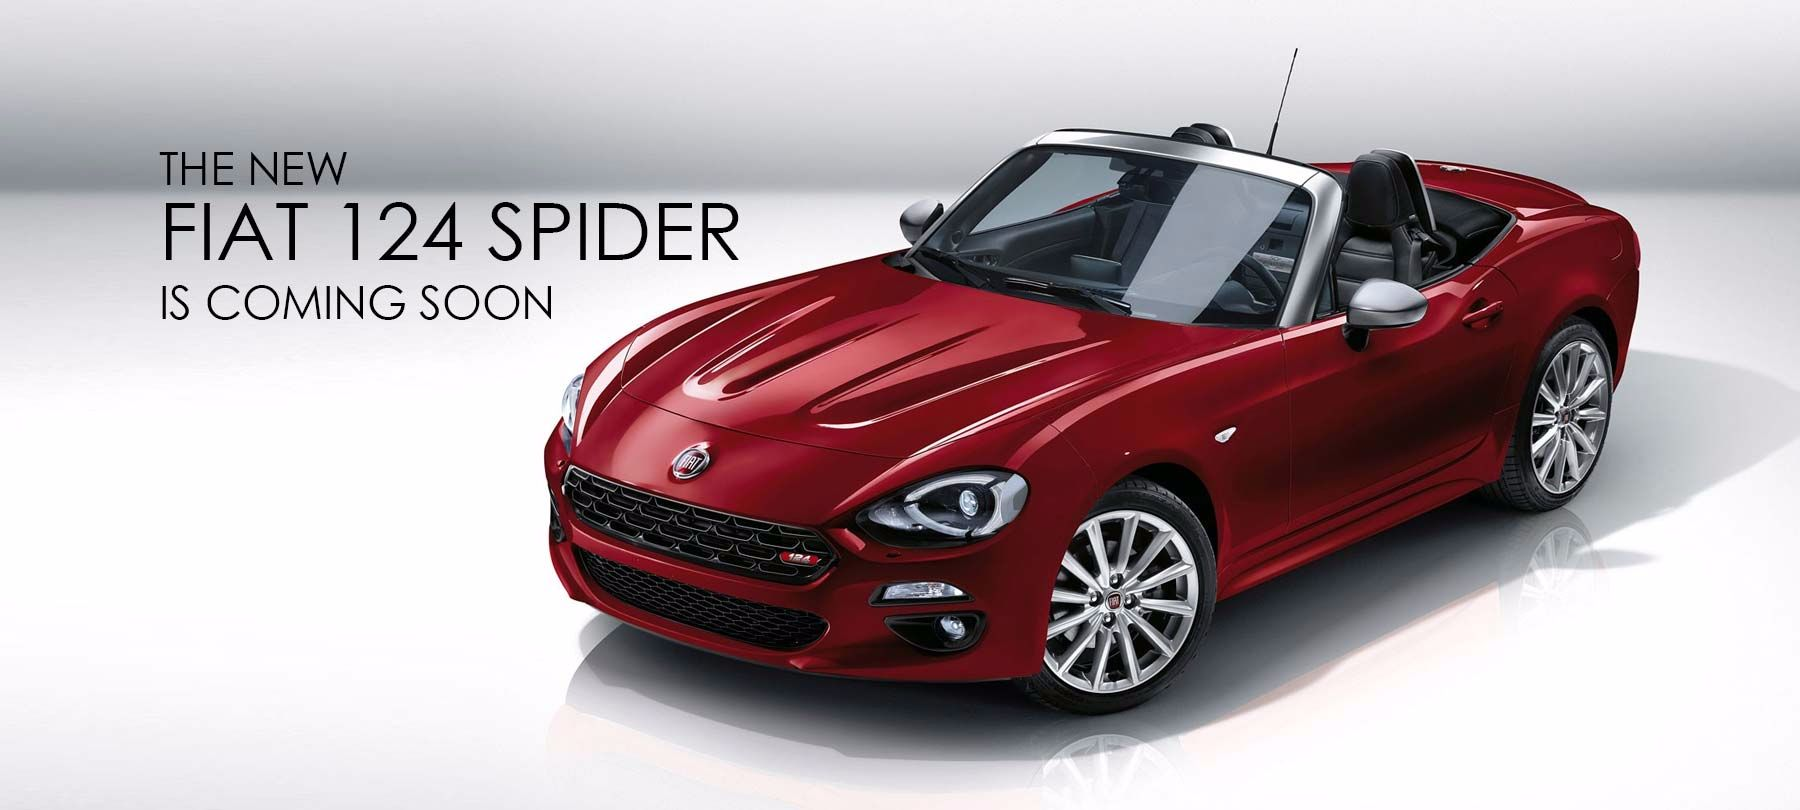 The new Fiat 124 Spider at Threeways Garage